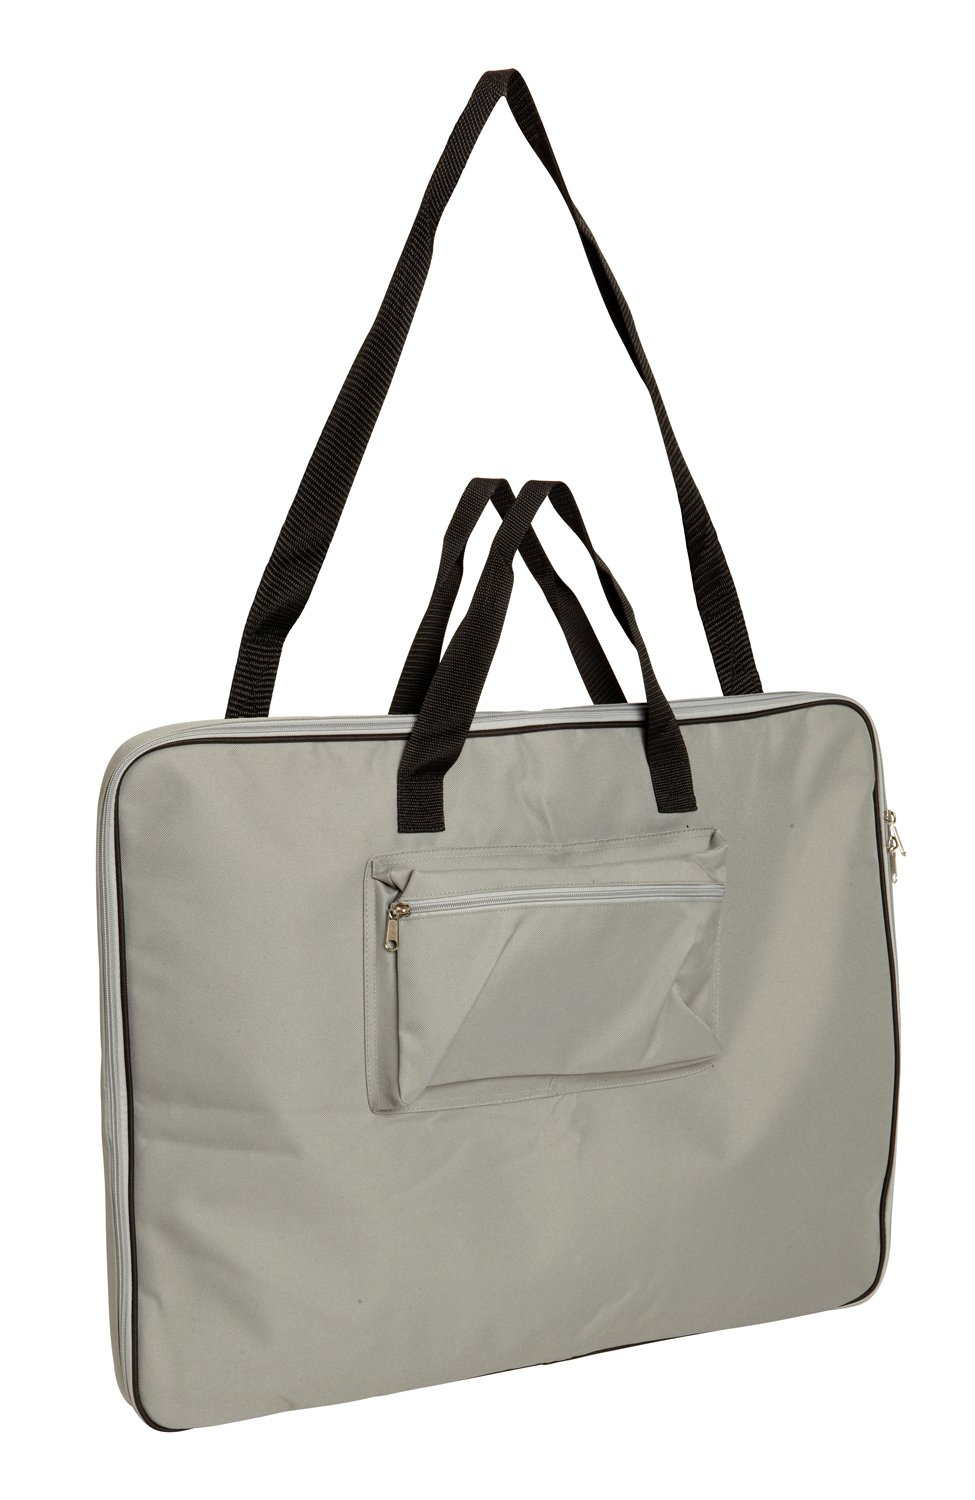 sewsteady 26x26 Bag, Grey